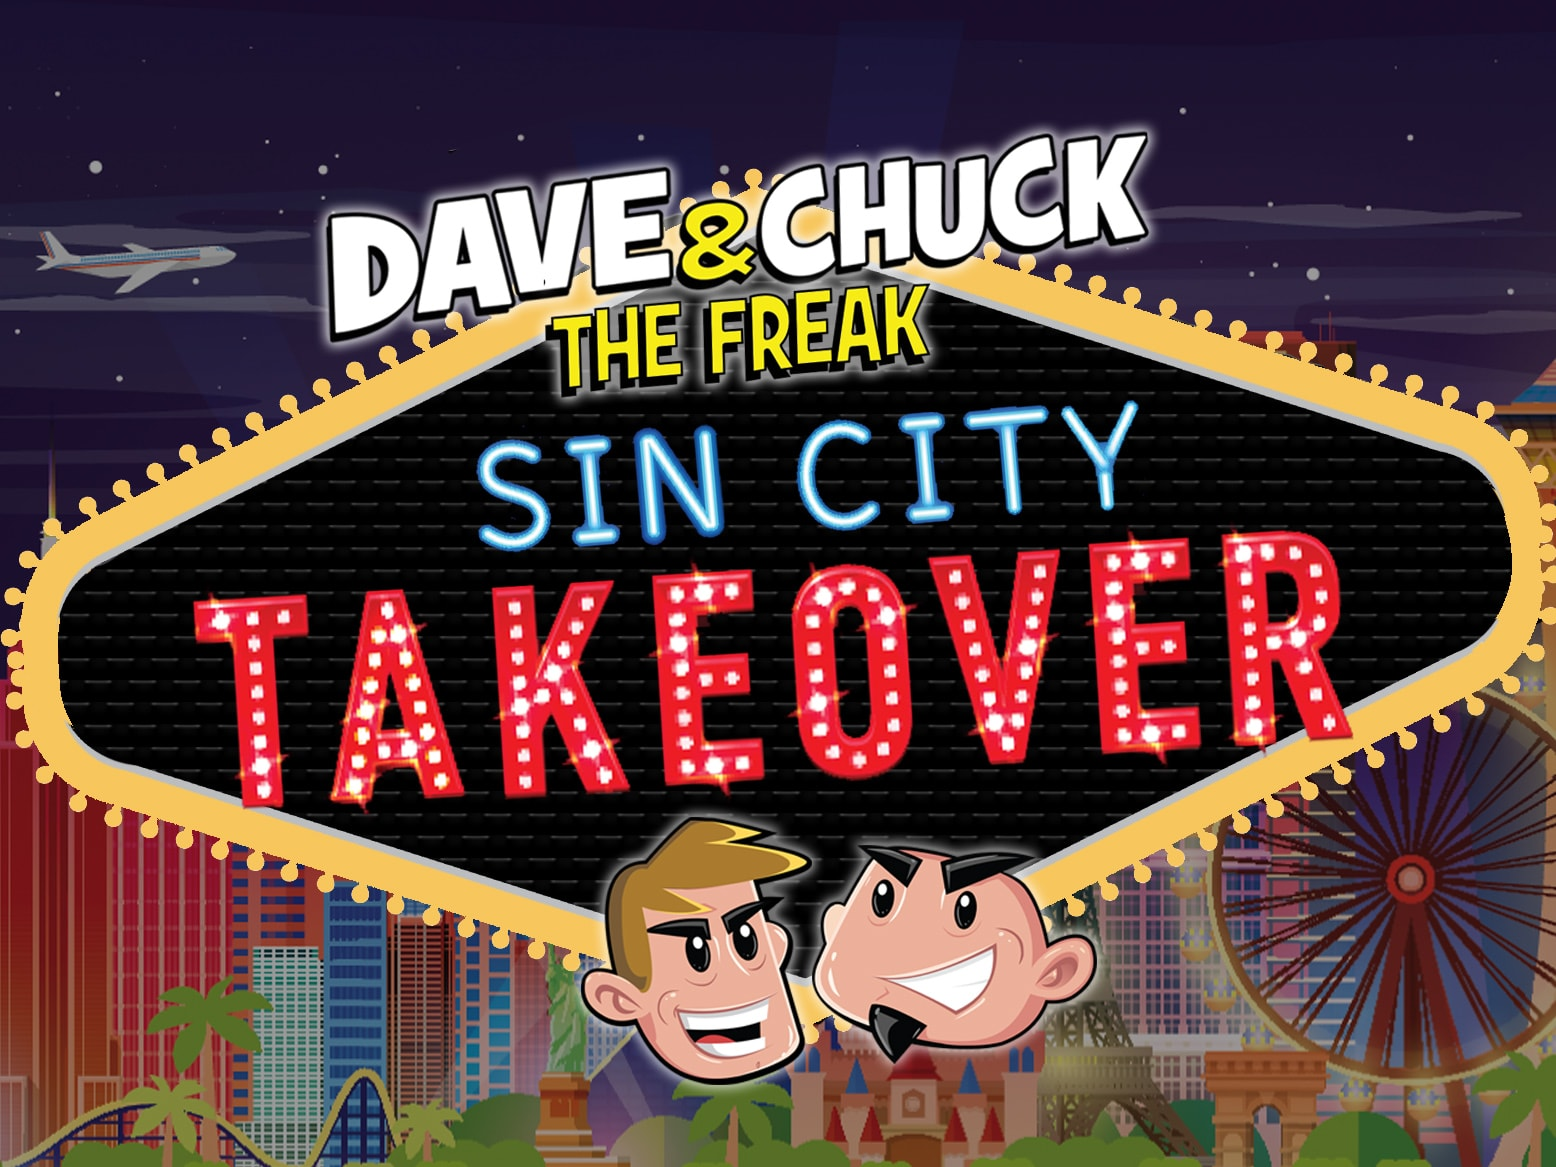 Win a Trip to Vegas to See Dave & Chuck the Freak! - ROCK